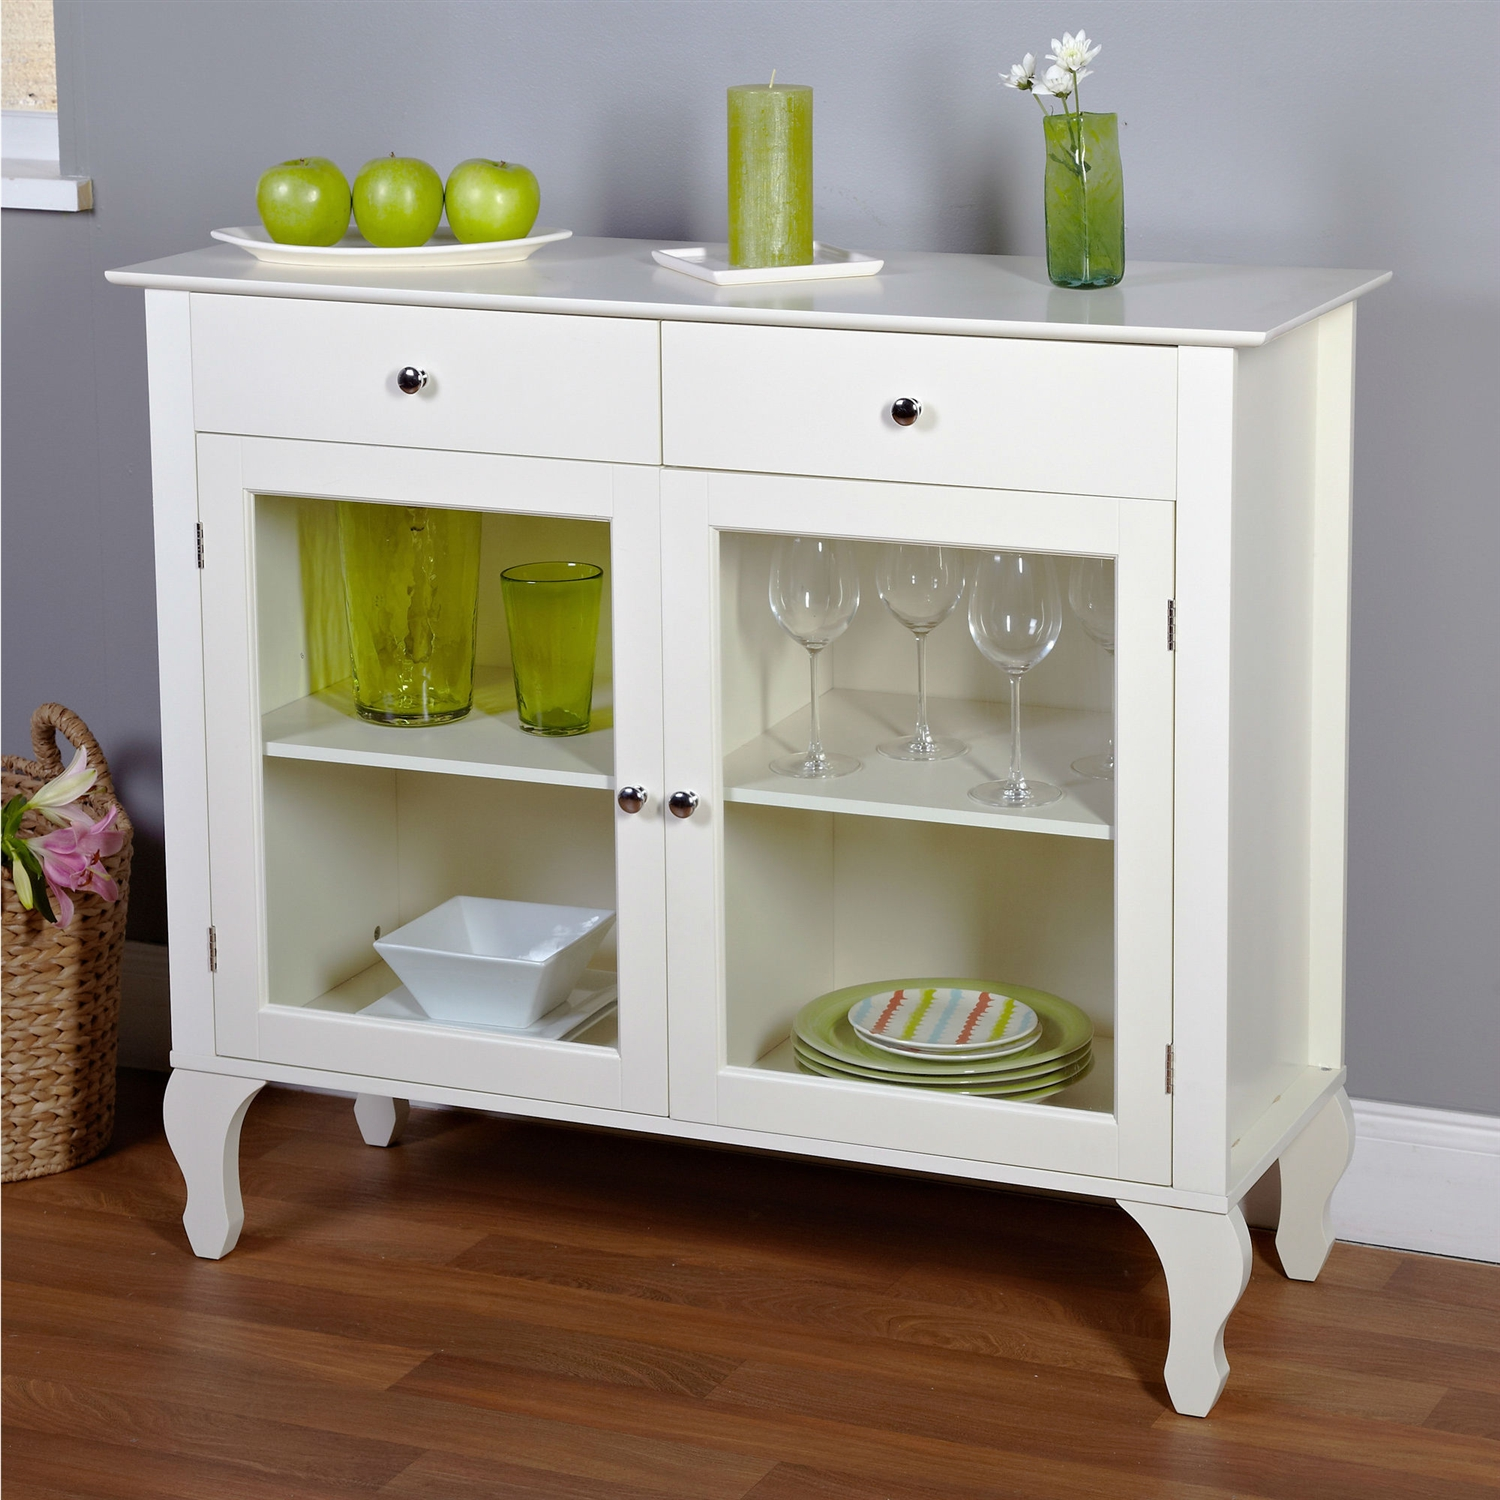 Antique White Sideboard Buffet Console Table with Glass Doors |  Traveller Location